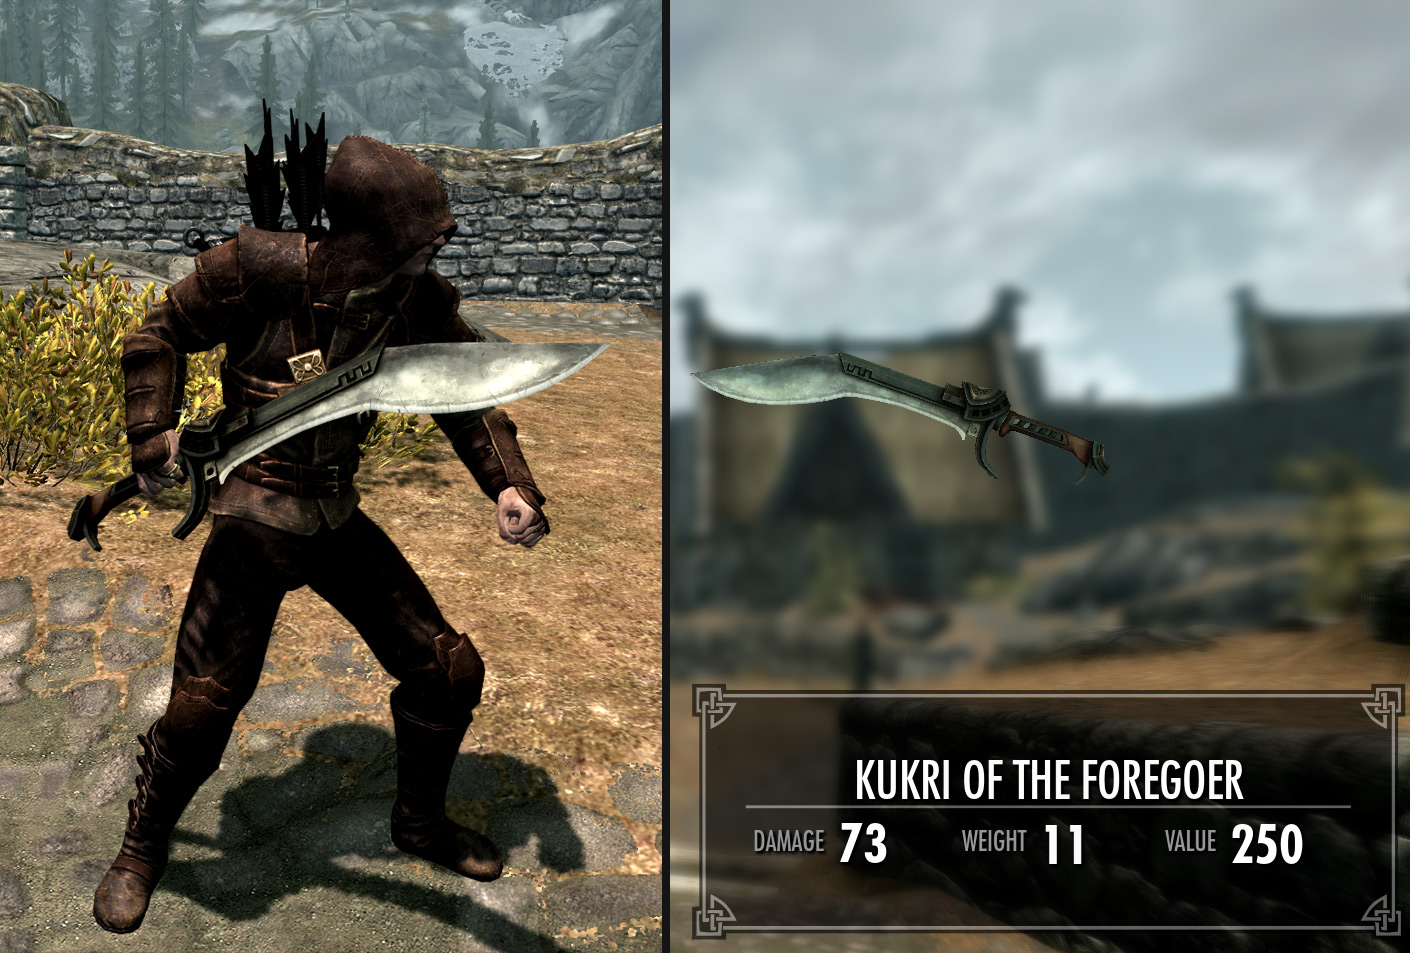 kukri_of_the_foregoer___skyrim_by_9thknight-d7pu7z8.jpg